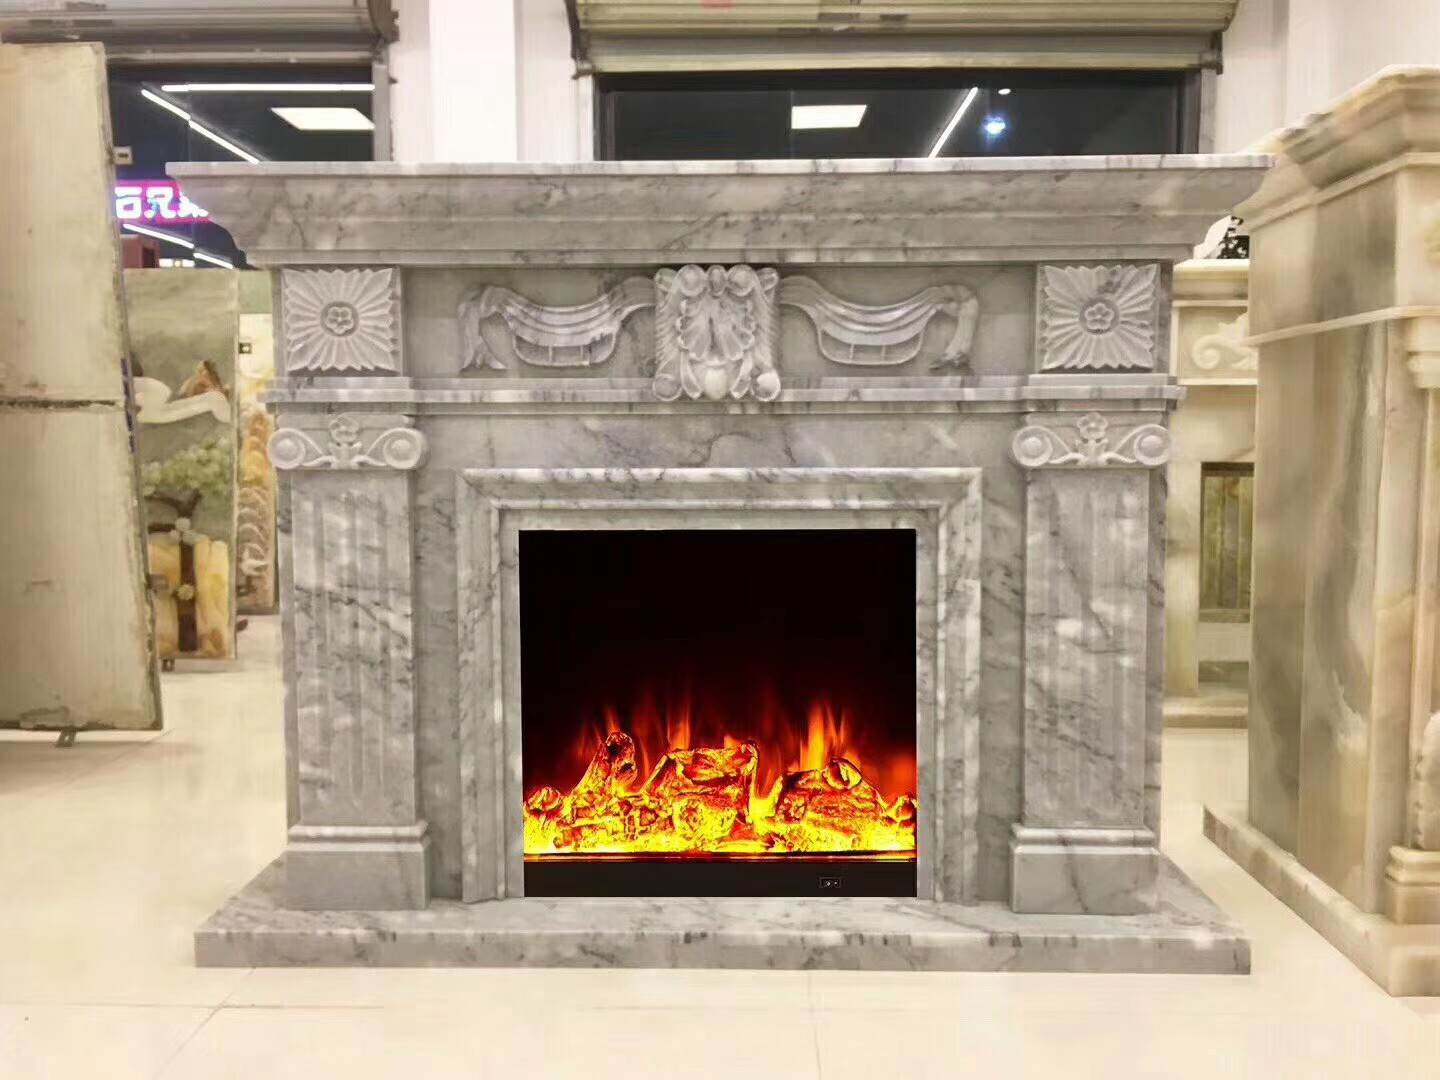 marble fireplace,electric stove fireplace,electric fireplaces for sale,double sided fireplace,direct vent gas fireplace insert,brick fireplace,fireplace makeover